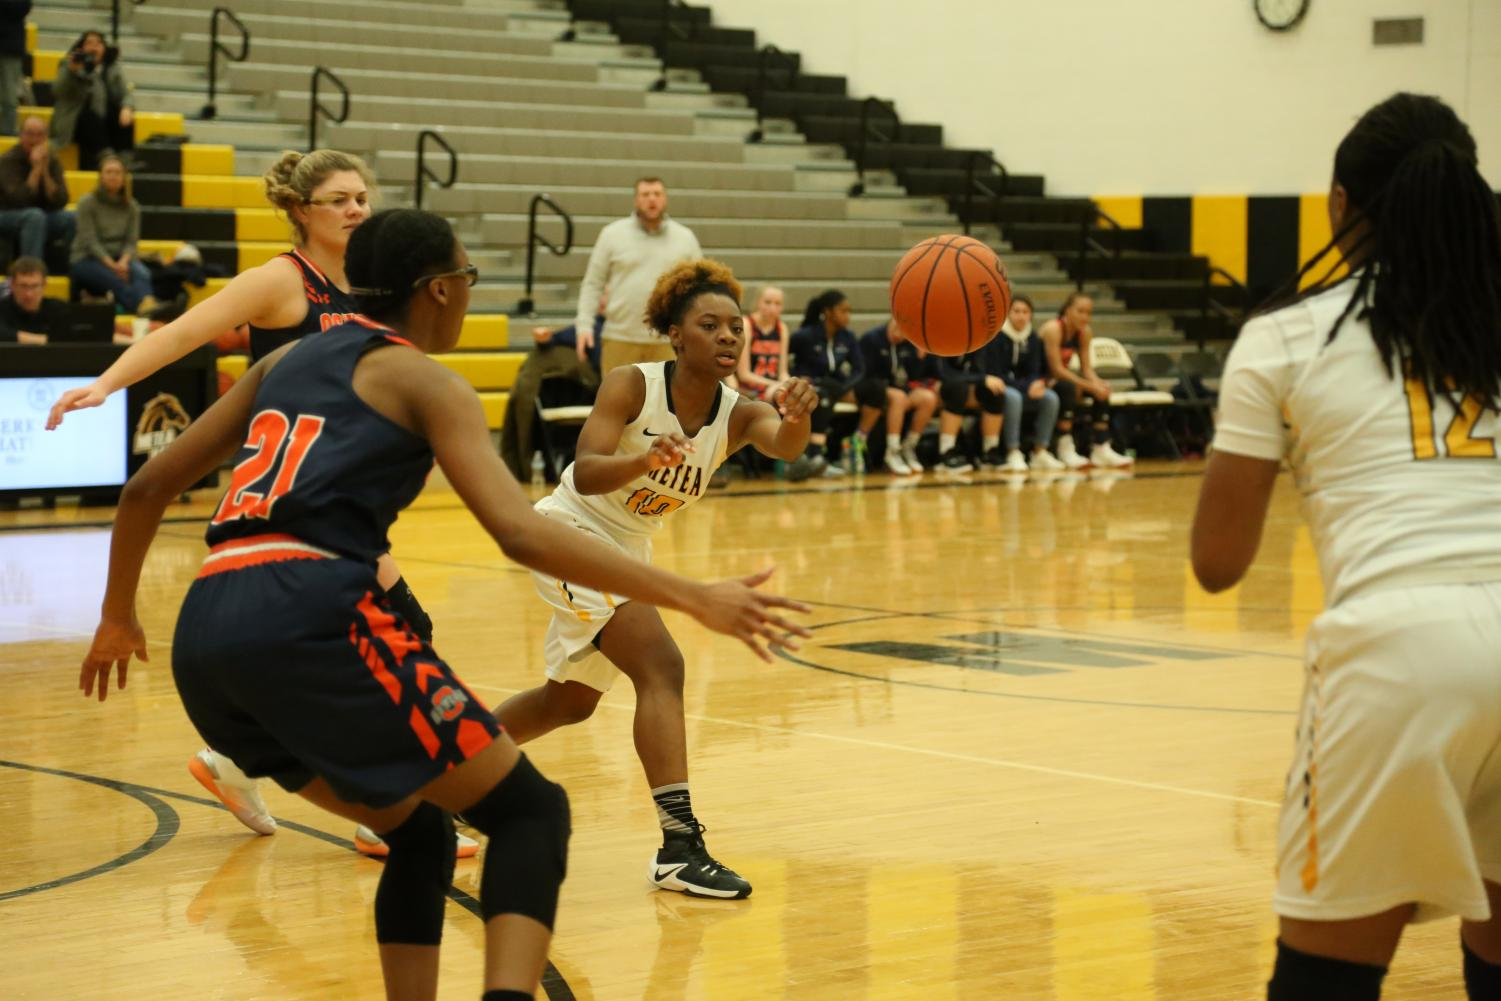 #10 Raniyah Naylor passing the ball to #12 point guard Nazuri Whigham during fourth quarter.